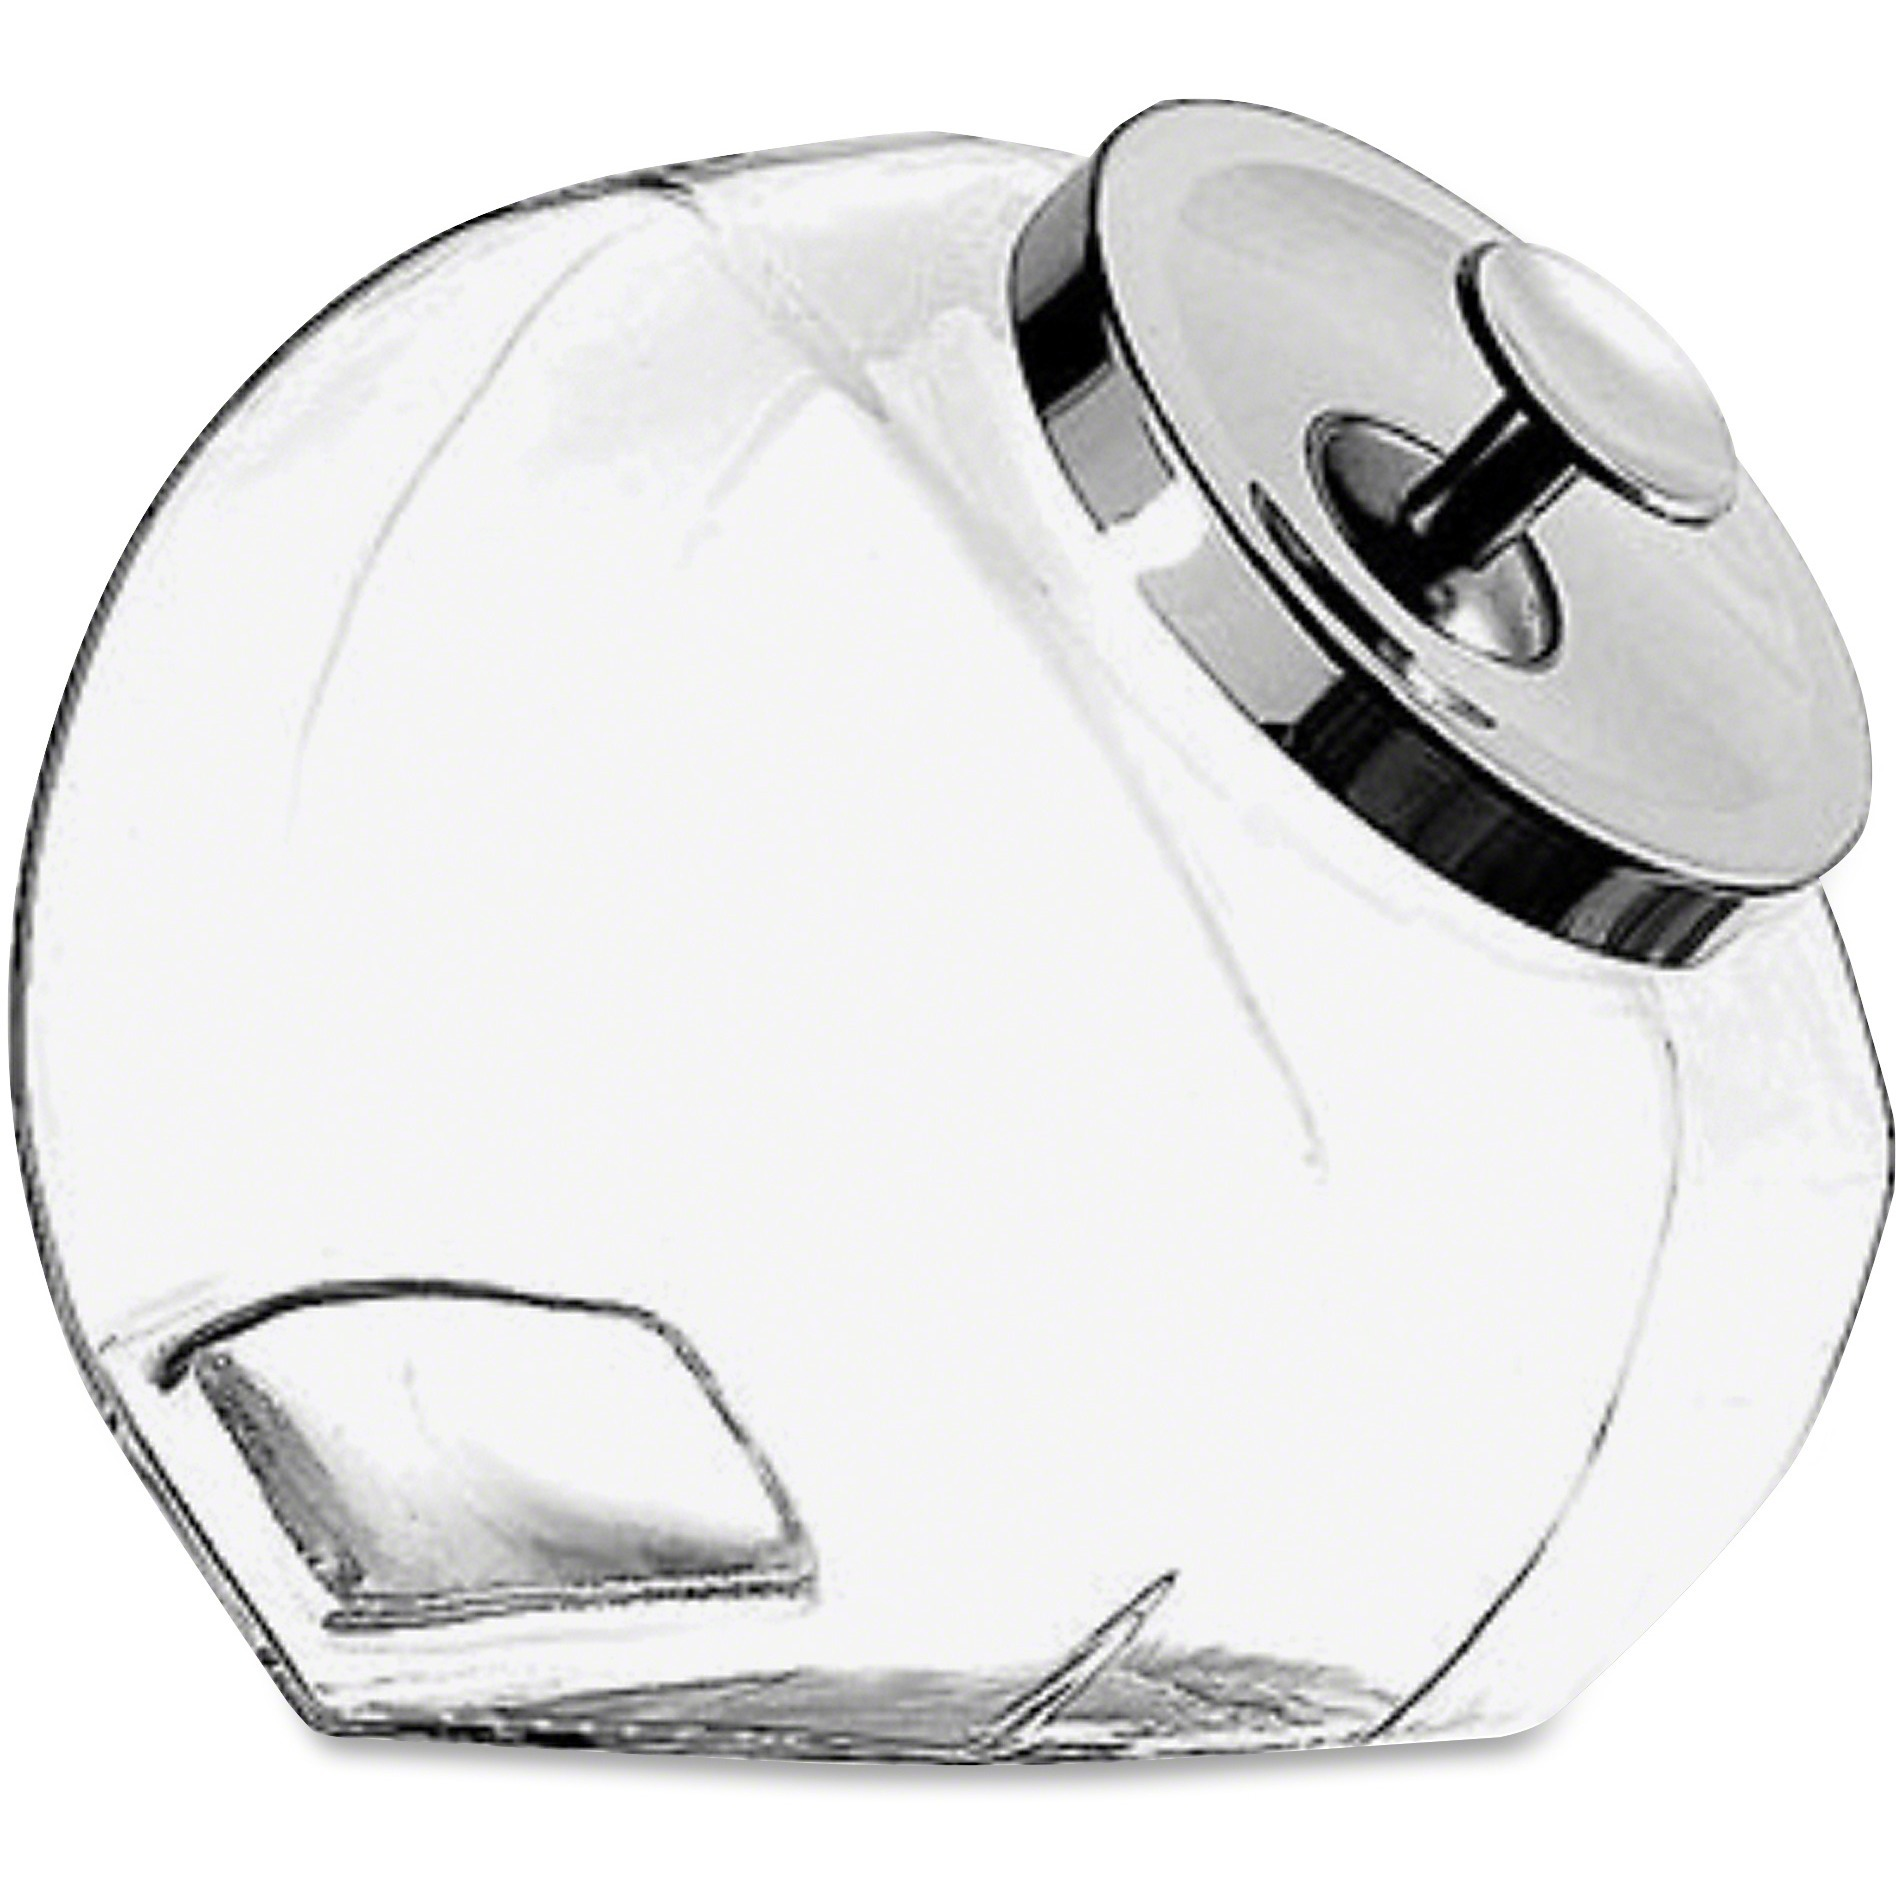 Office Settings Penny Candy Display Container, Clear, 1 / Each (Quantity)